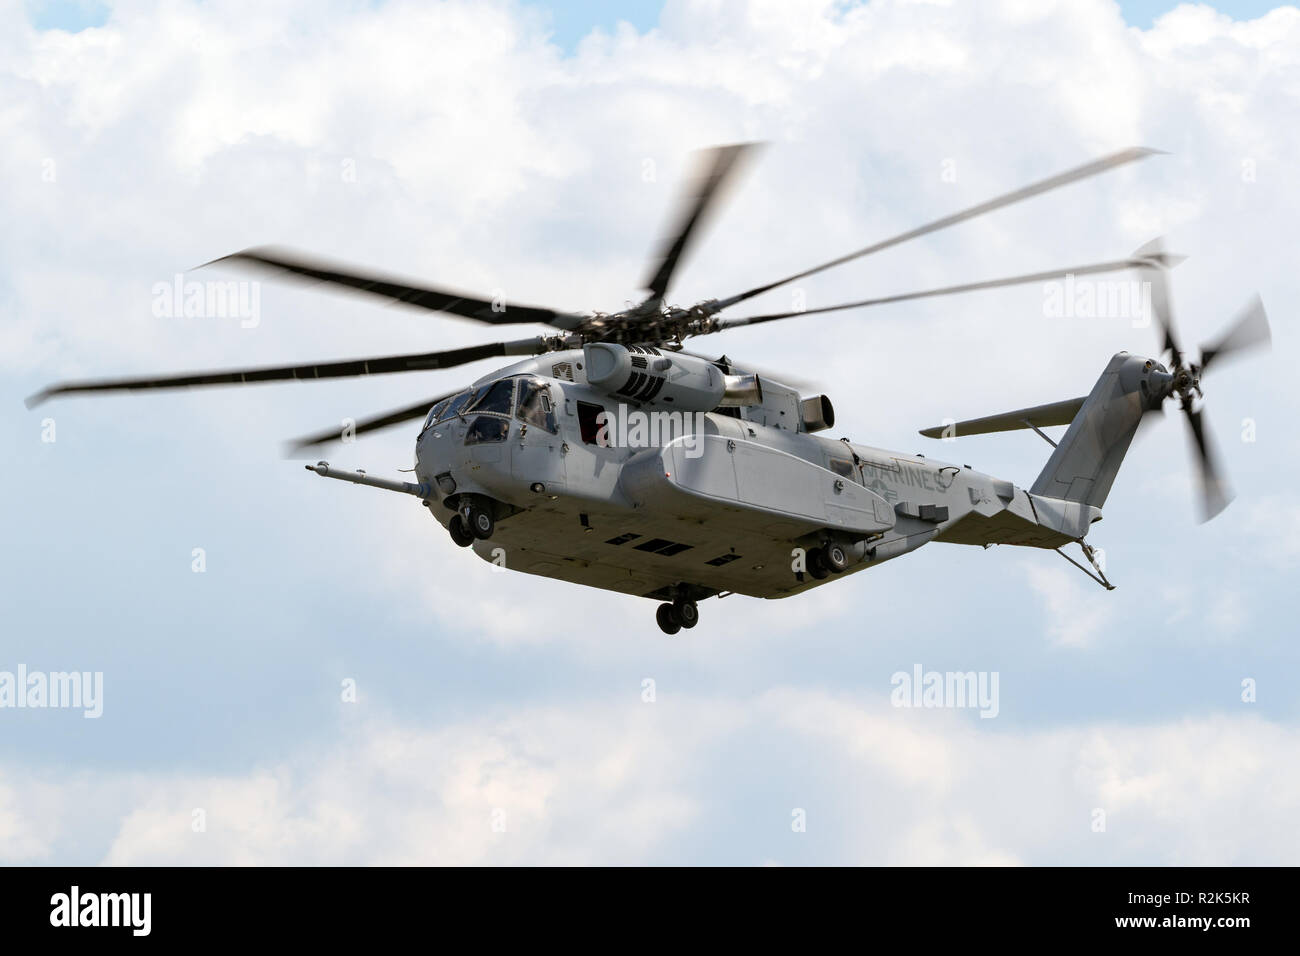 BERLIN - APR 27, 2018: New Sikorsky CH-53K King Stallion heavy-lift helicopter of the US Marines in action at the Berlin ILA Air Show. - Stock Image